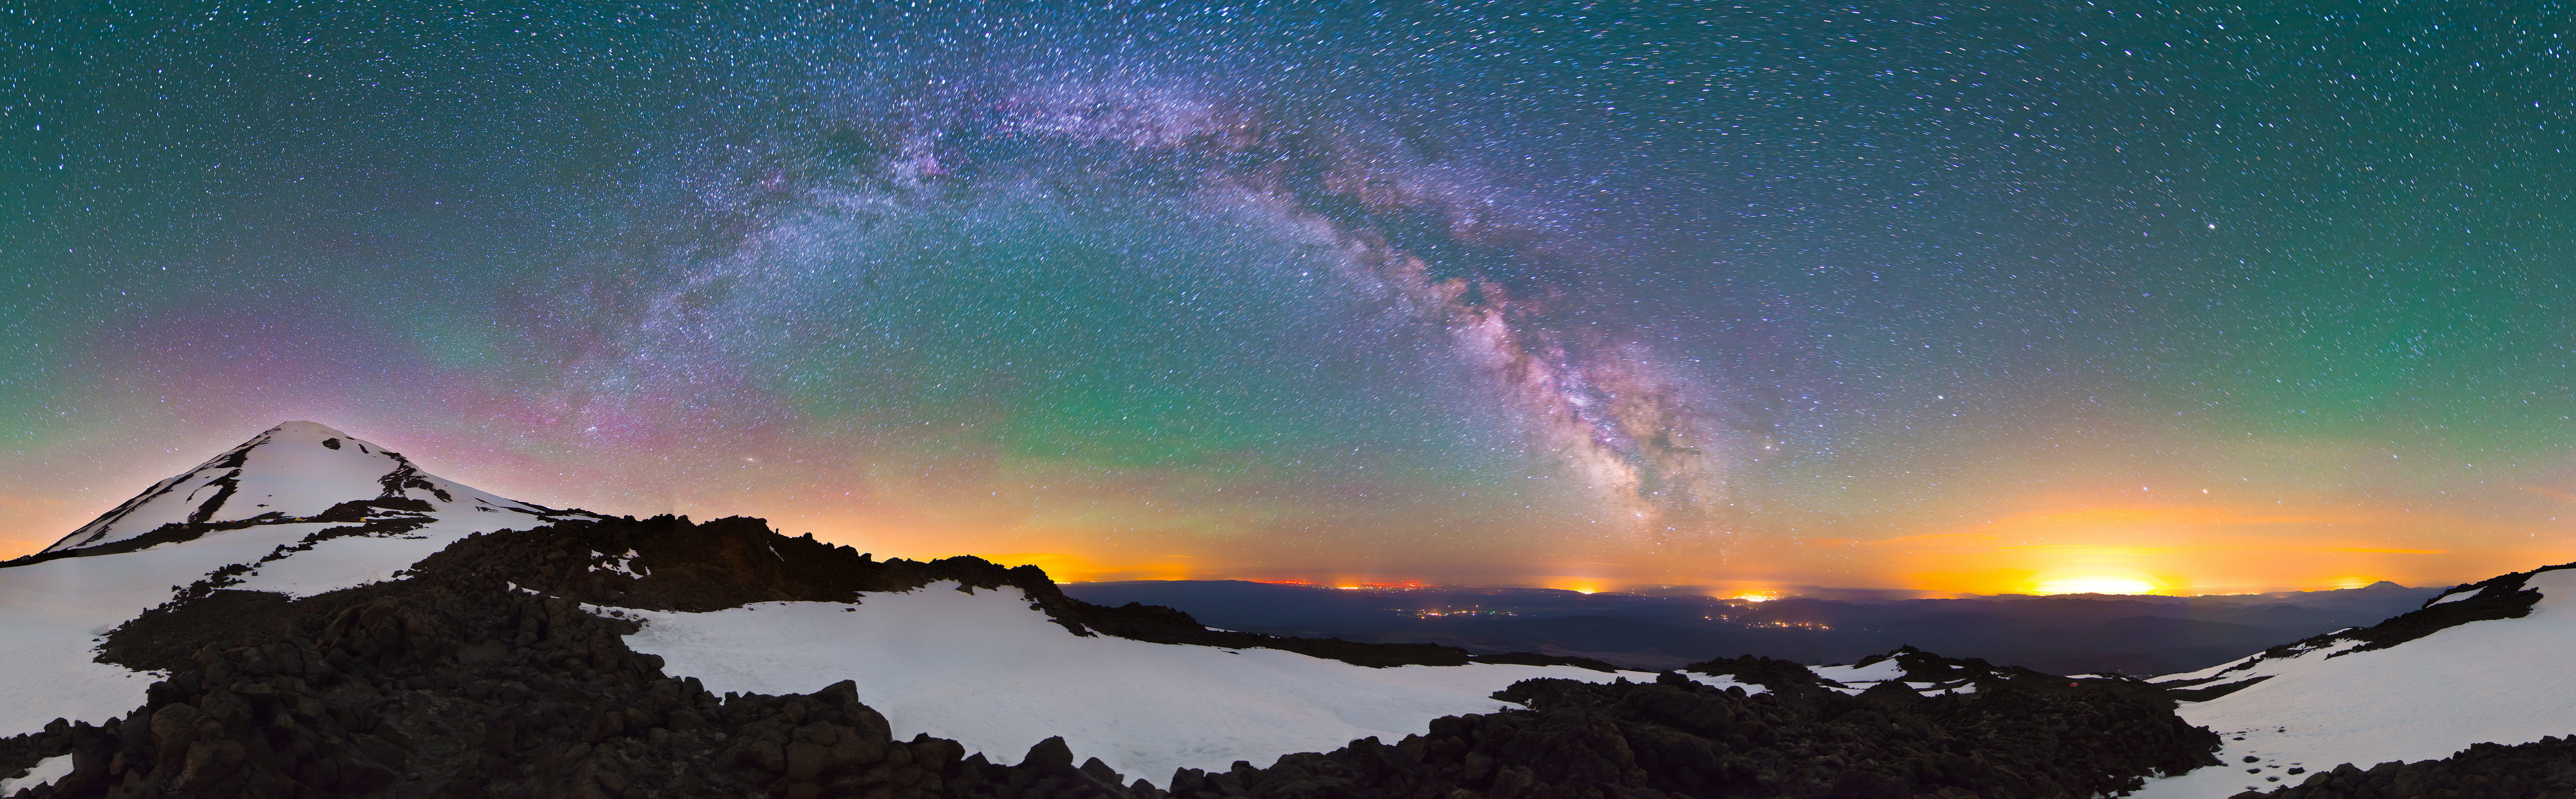 Washington - Mount Adams - Camping at Suksdorf - Darksky - 360